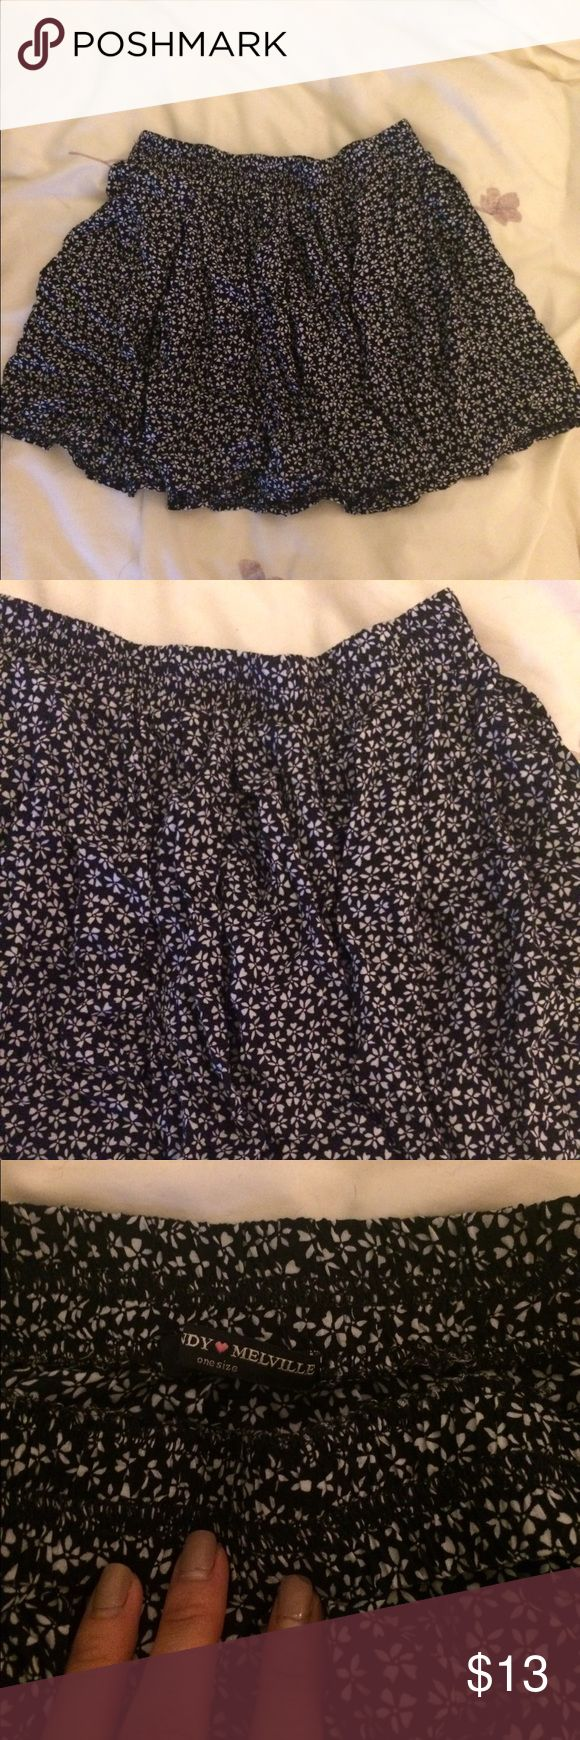 "Brandy Melville skirt Blue with white floral print. Super cute!! One of my favorite ones. Worn multiple times. It still in great condition. This one runs a bit short unfortunately. I'm 5'3"" and would not bend over in this. Brandy Melville Skirts"